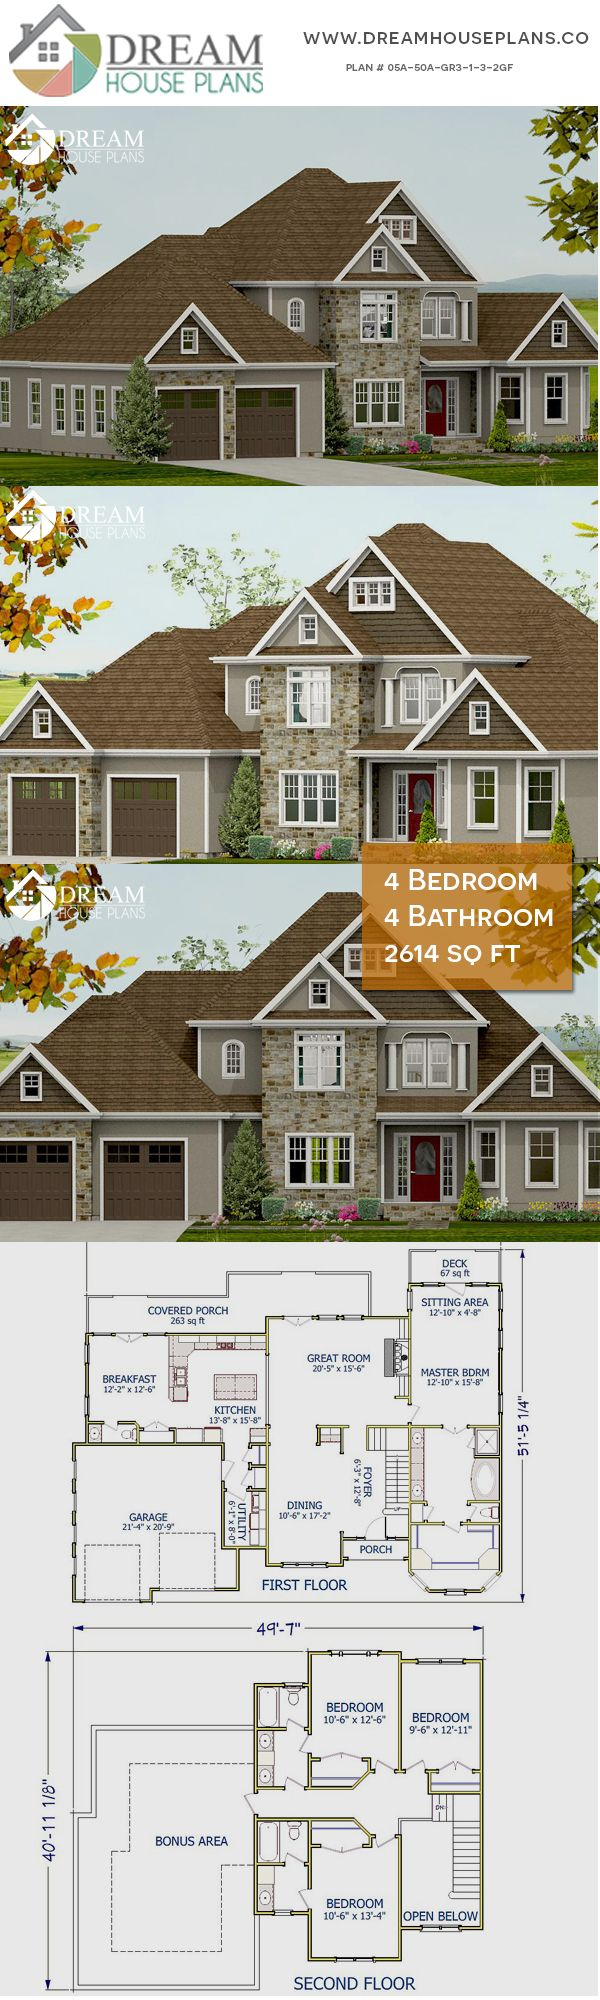 Dream House Plans Popular Southern 4 Bedroom 2614 Sq Ft House Plan With Custom Home Plan Options We Southern House Plans House Plans Small Dream Homes